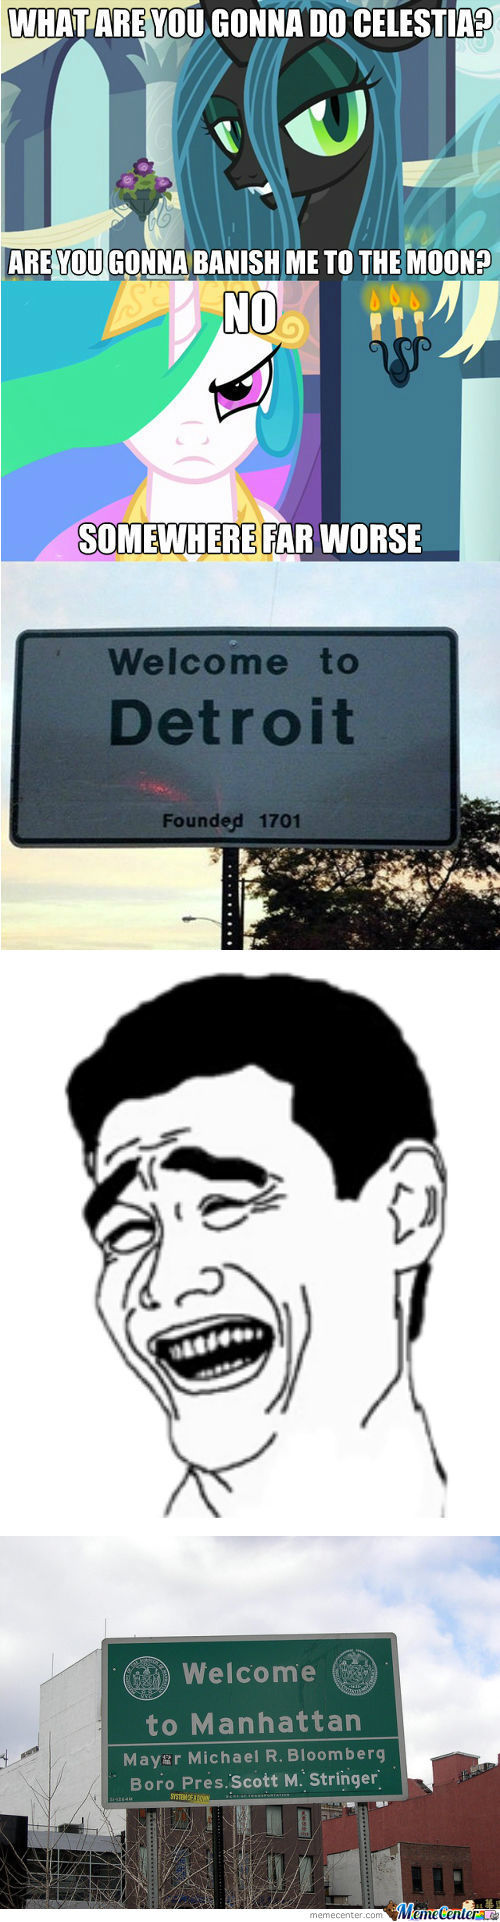 [RMX] What's The Only Thing That Grows In Detroit? The Crime Rate!